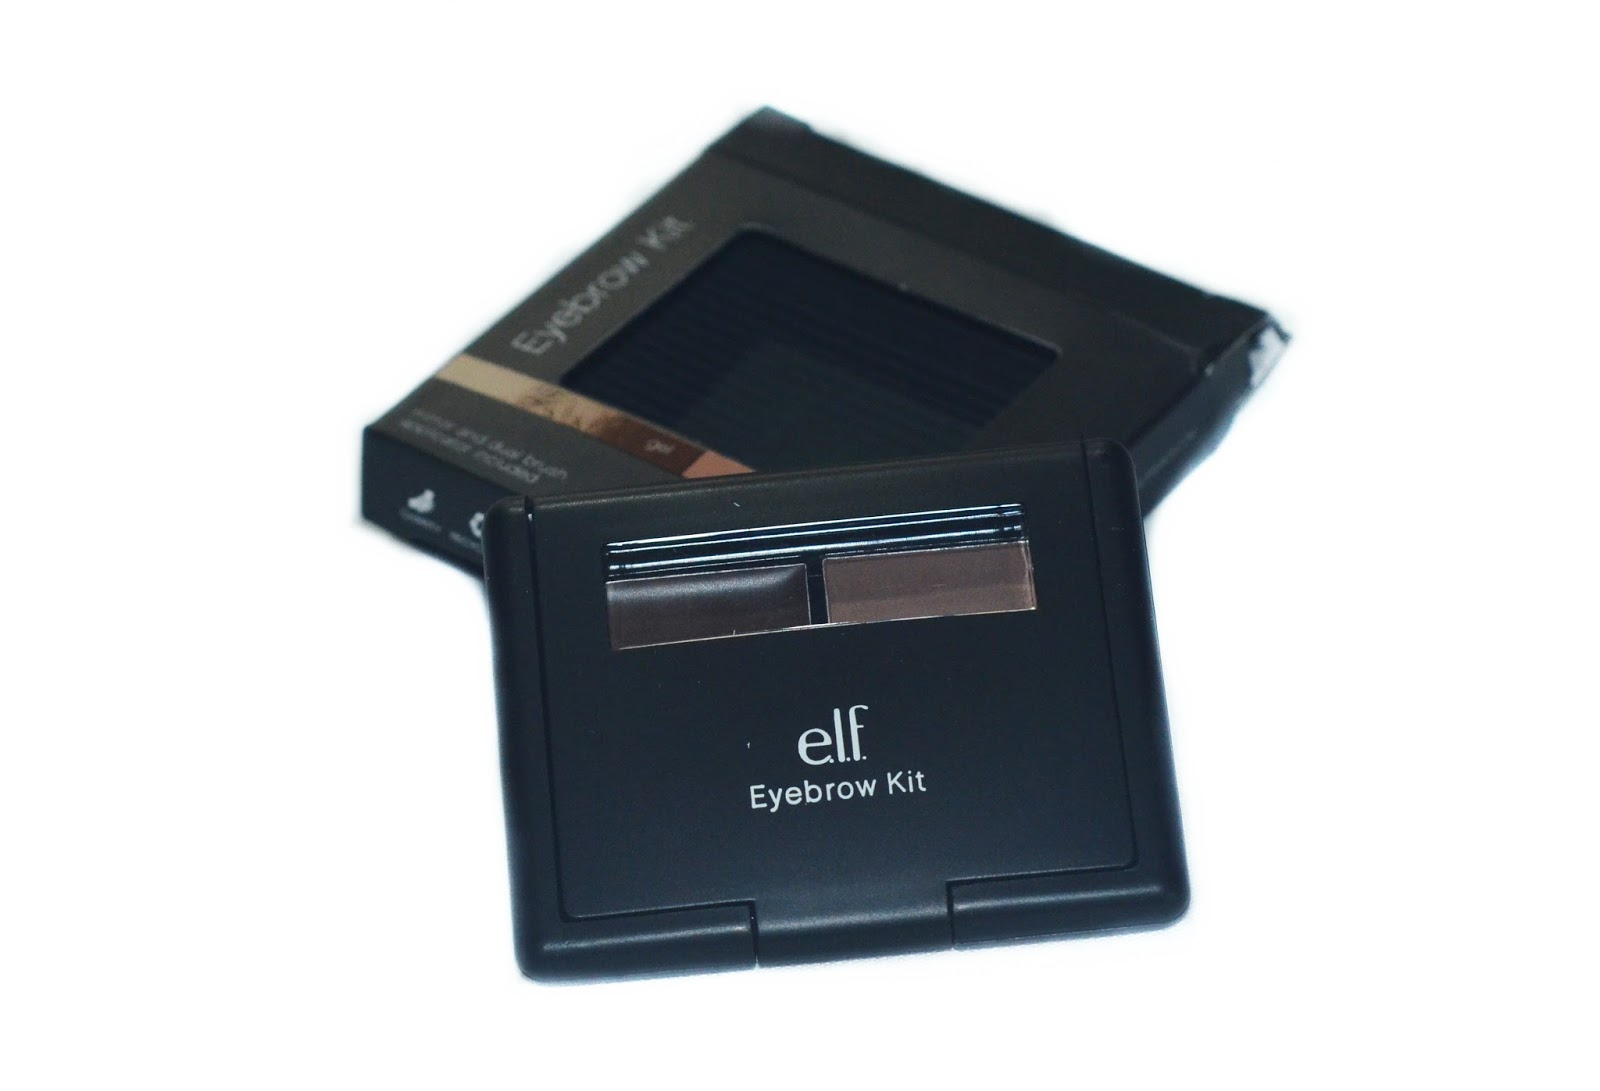 elf eyebrow kit review